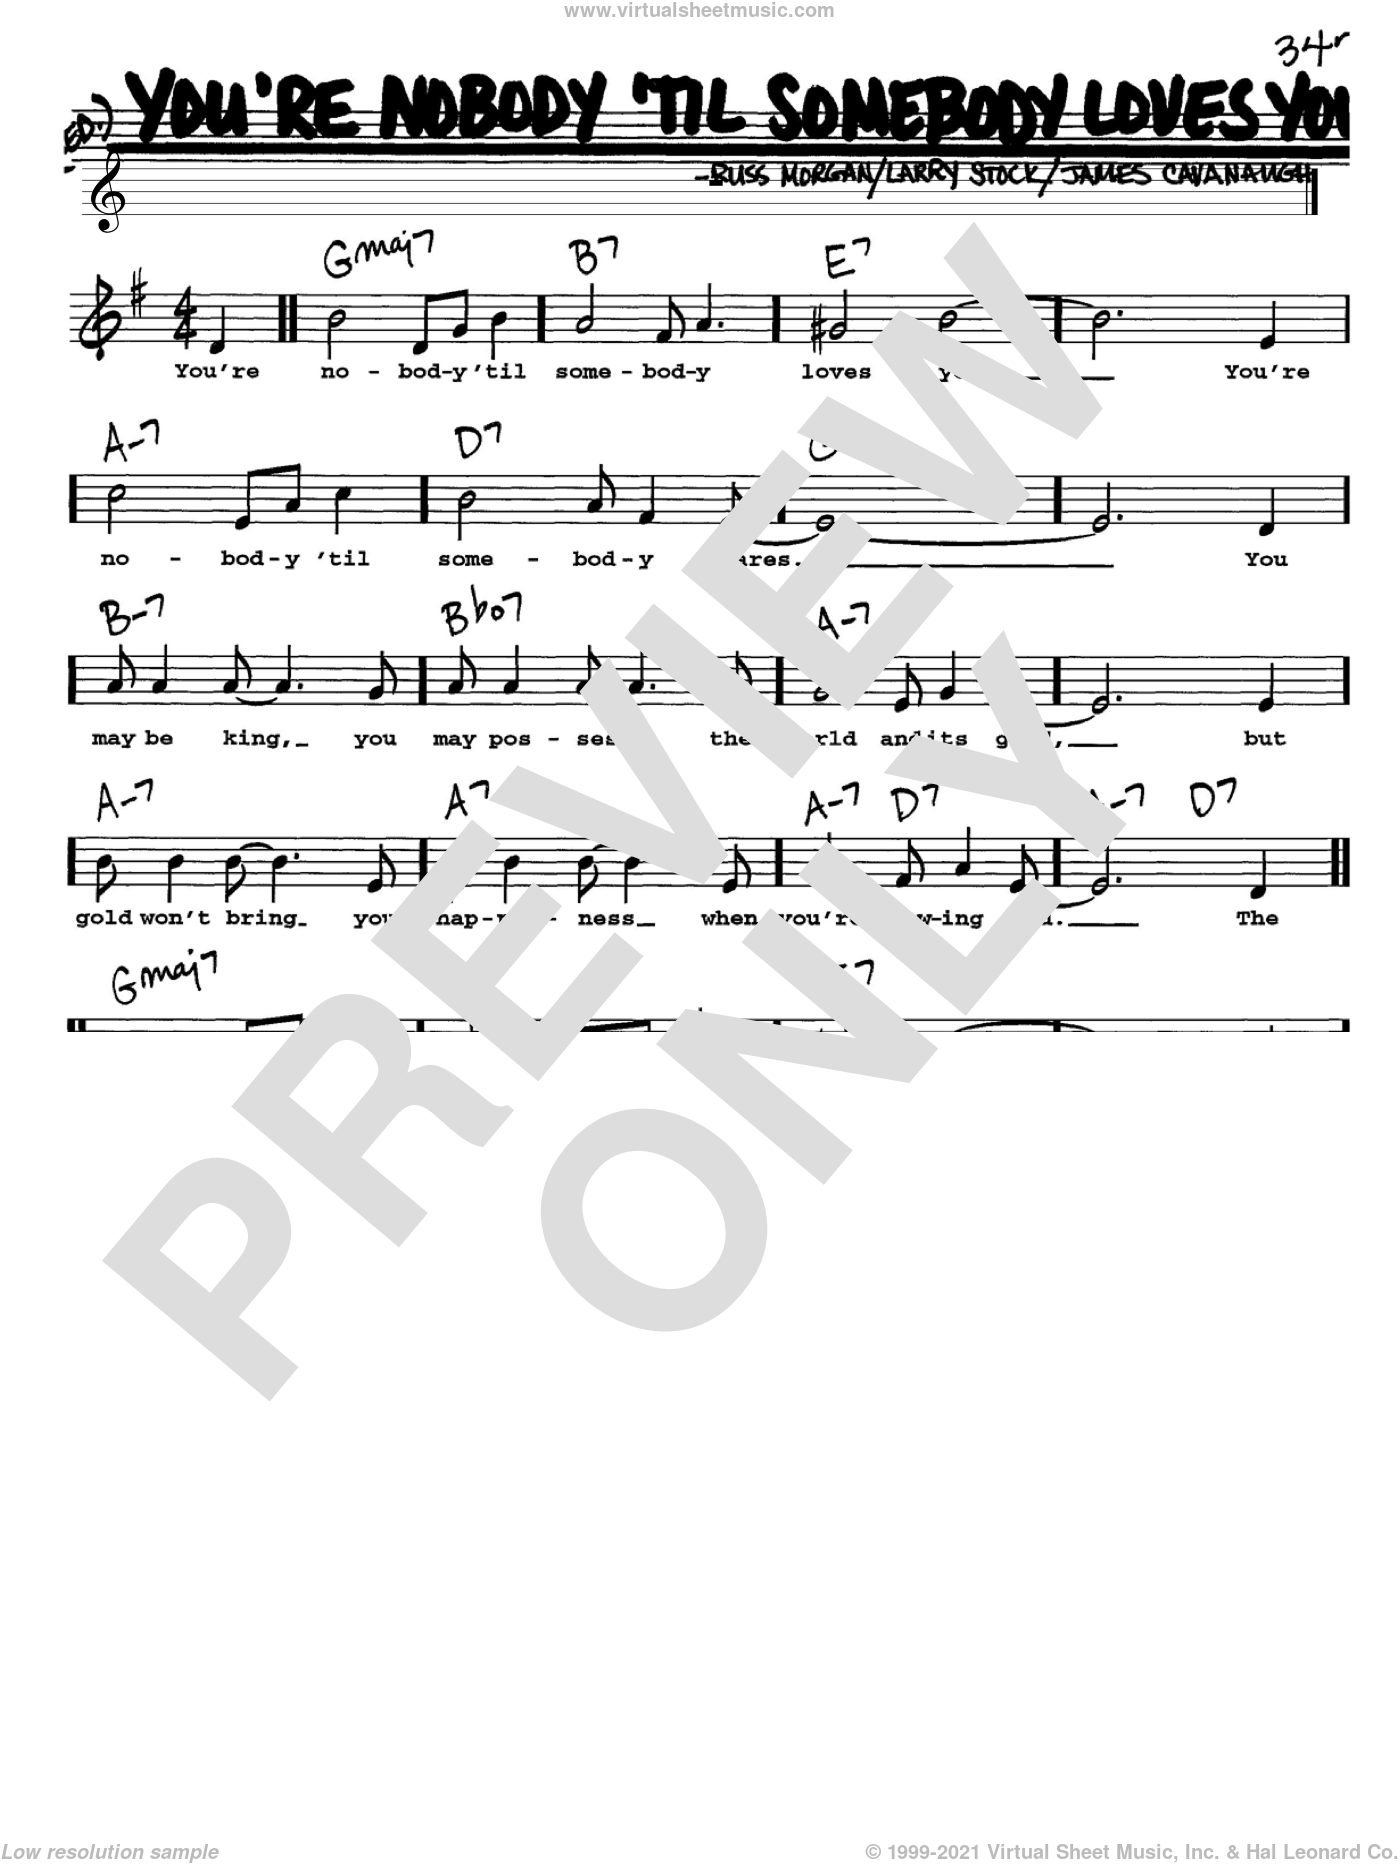 You're Nobody 'Til Somebody Loves You sheet music for voice and other instruments (Vocal Volume 1) by Russ Morgan, Dean Martin, Frank Sinatra, James Cavanaugh and Larry Stock. Score Image Preview.